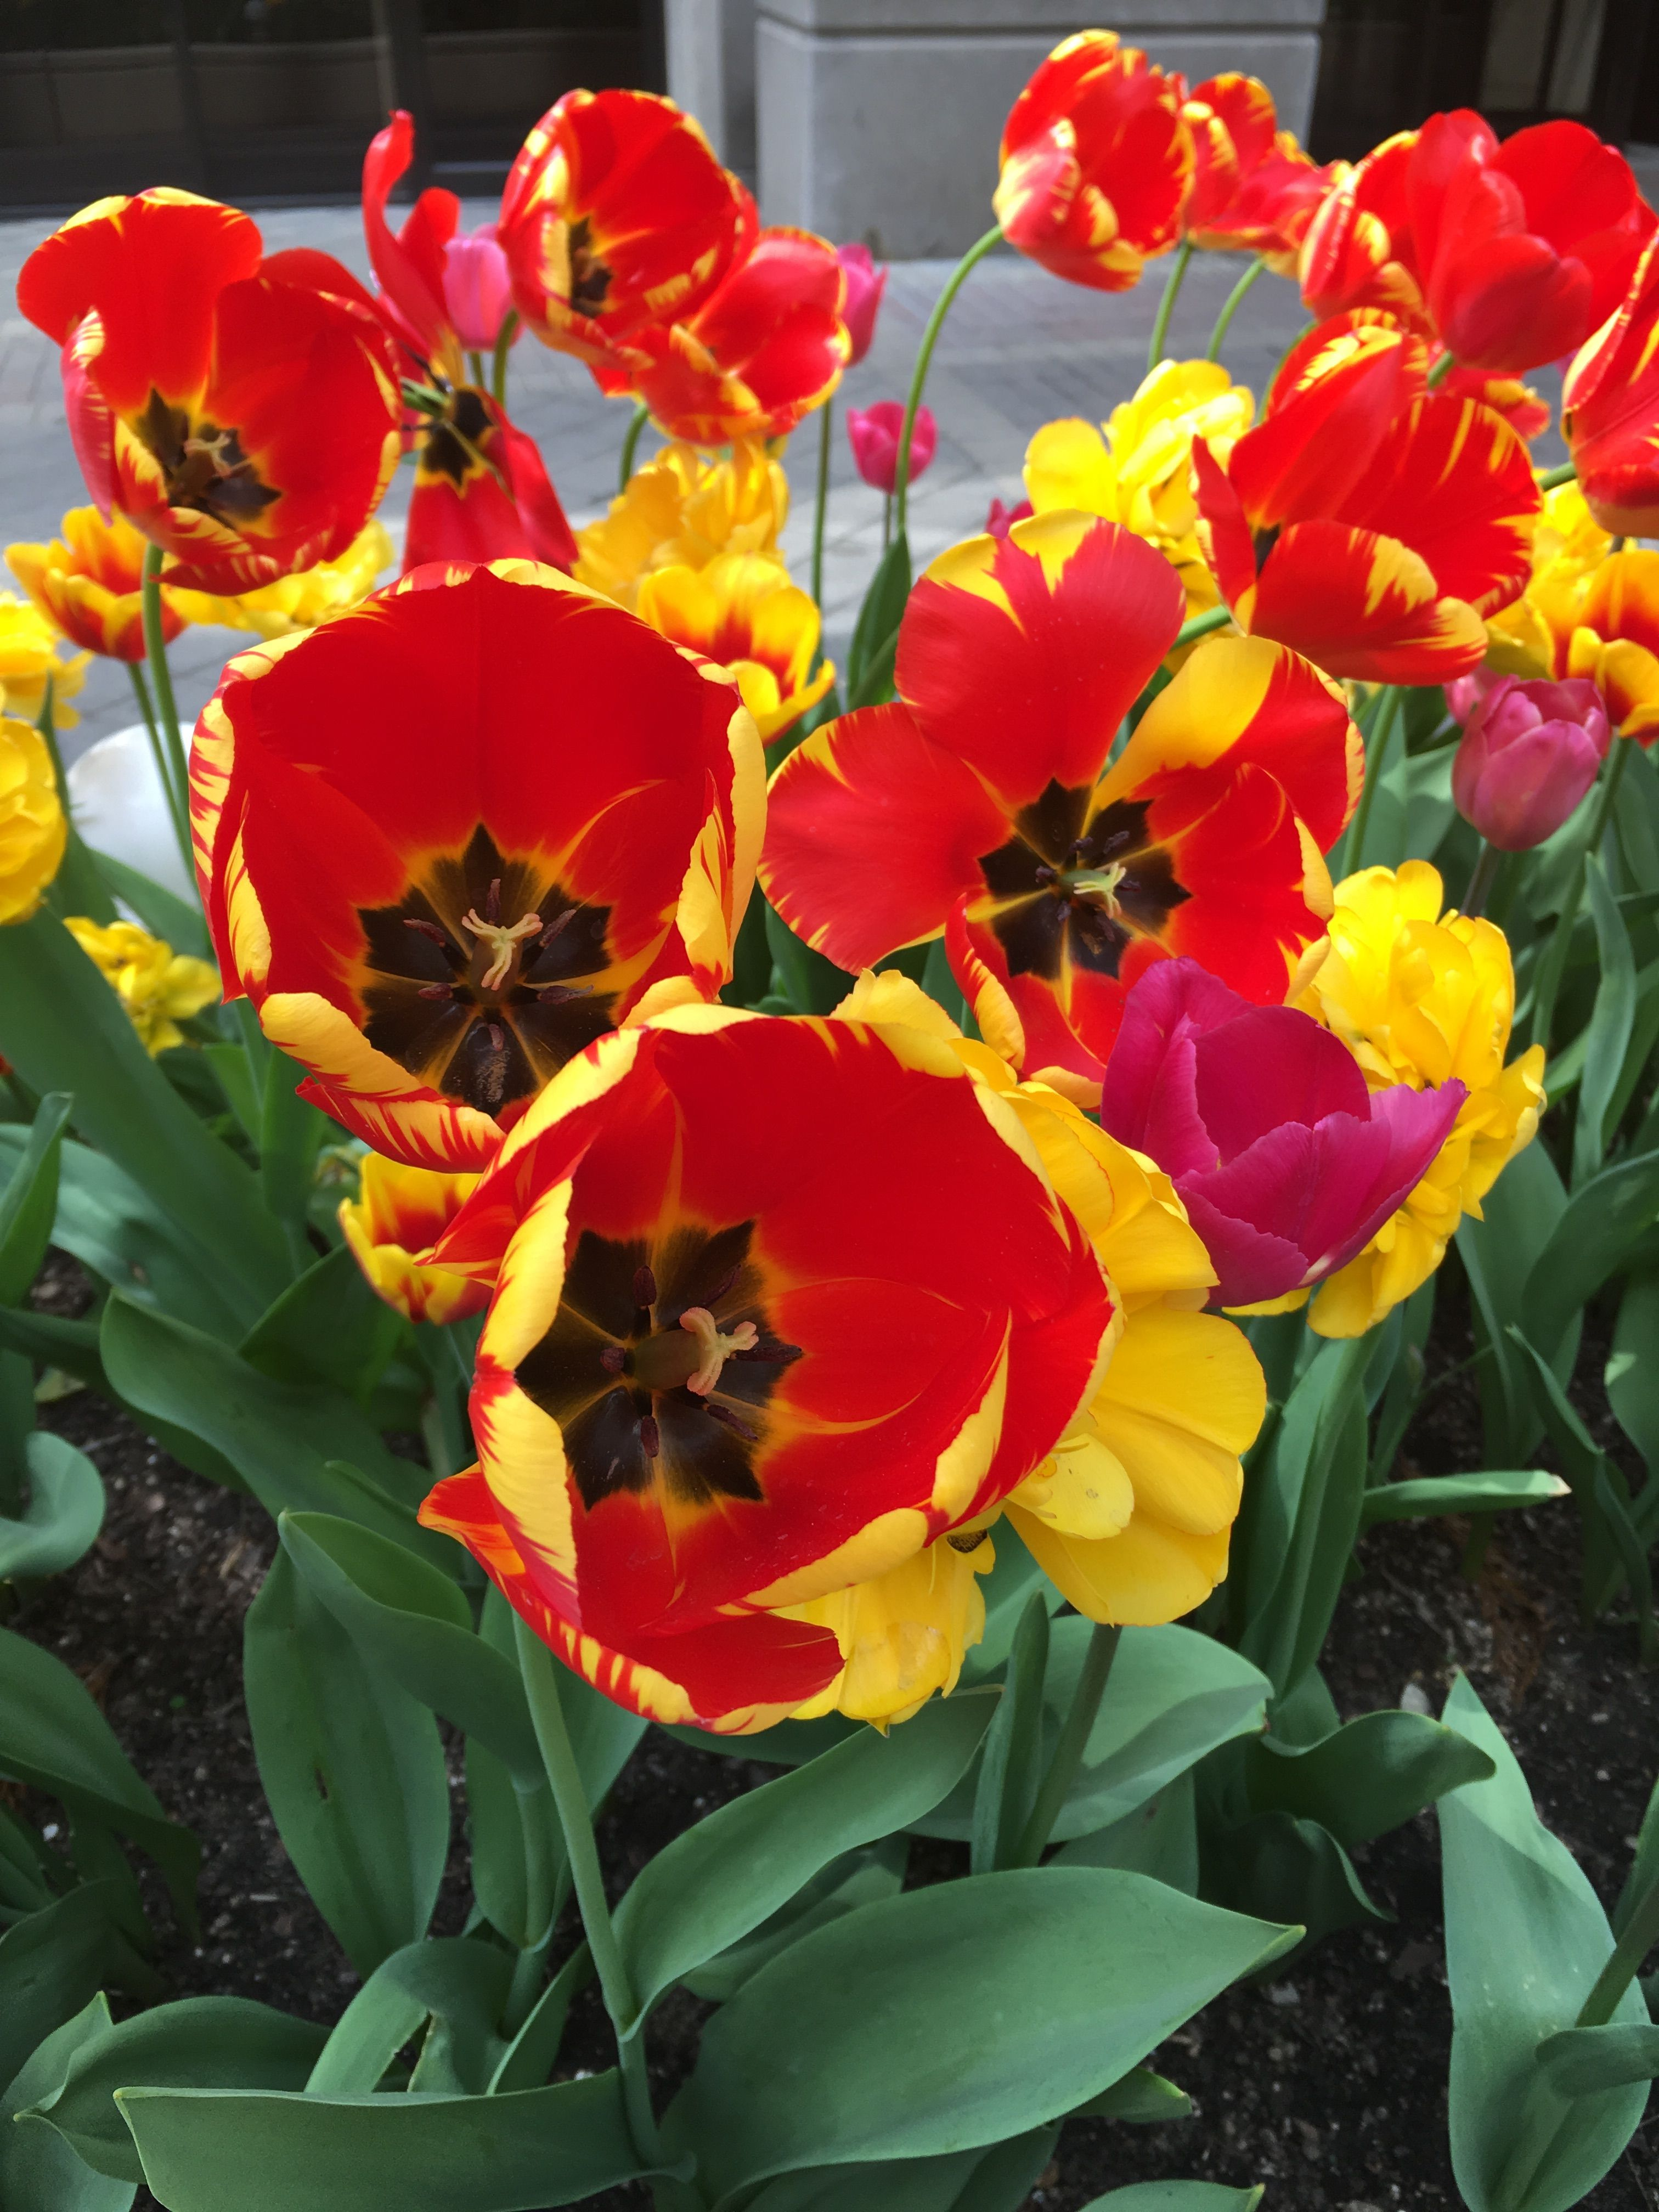 Love How Bright Spring Y These Flowers Are The Red Yellow Just